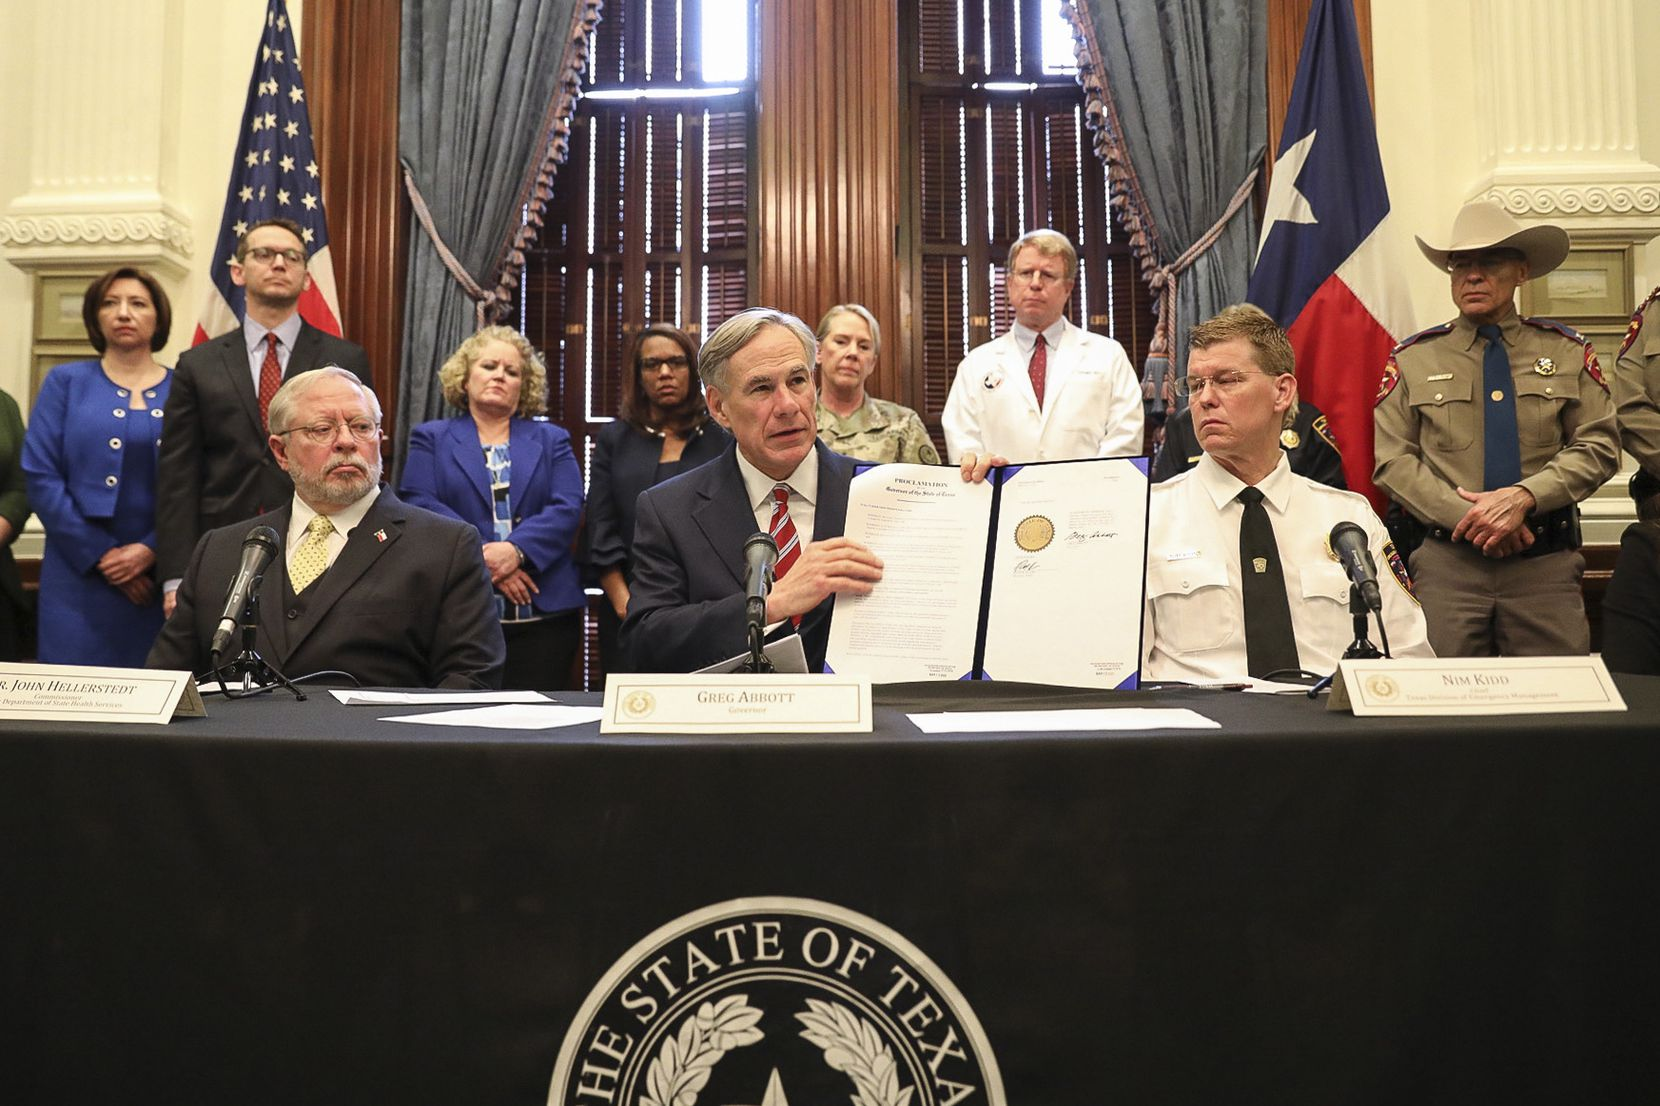 Texas' 10 public health laboratories aren't able to test people who do not have symptoms of COVID-19, state Health Services Commissioner John Hellerstedt (seated at left) said Friday